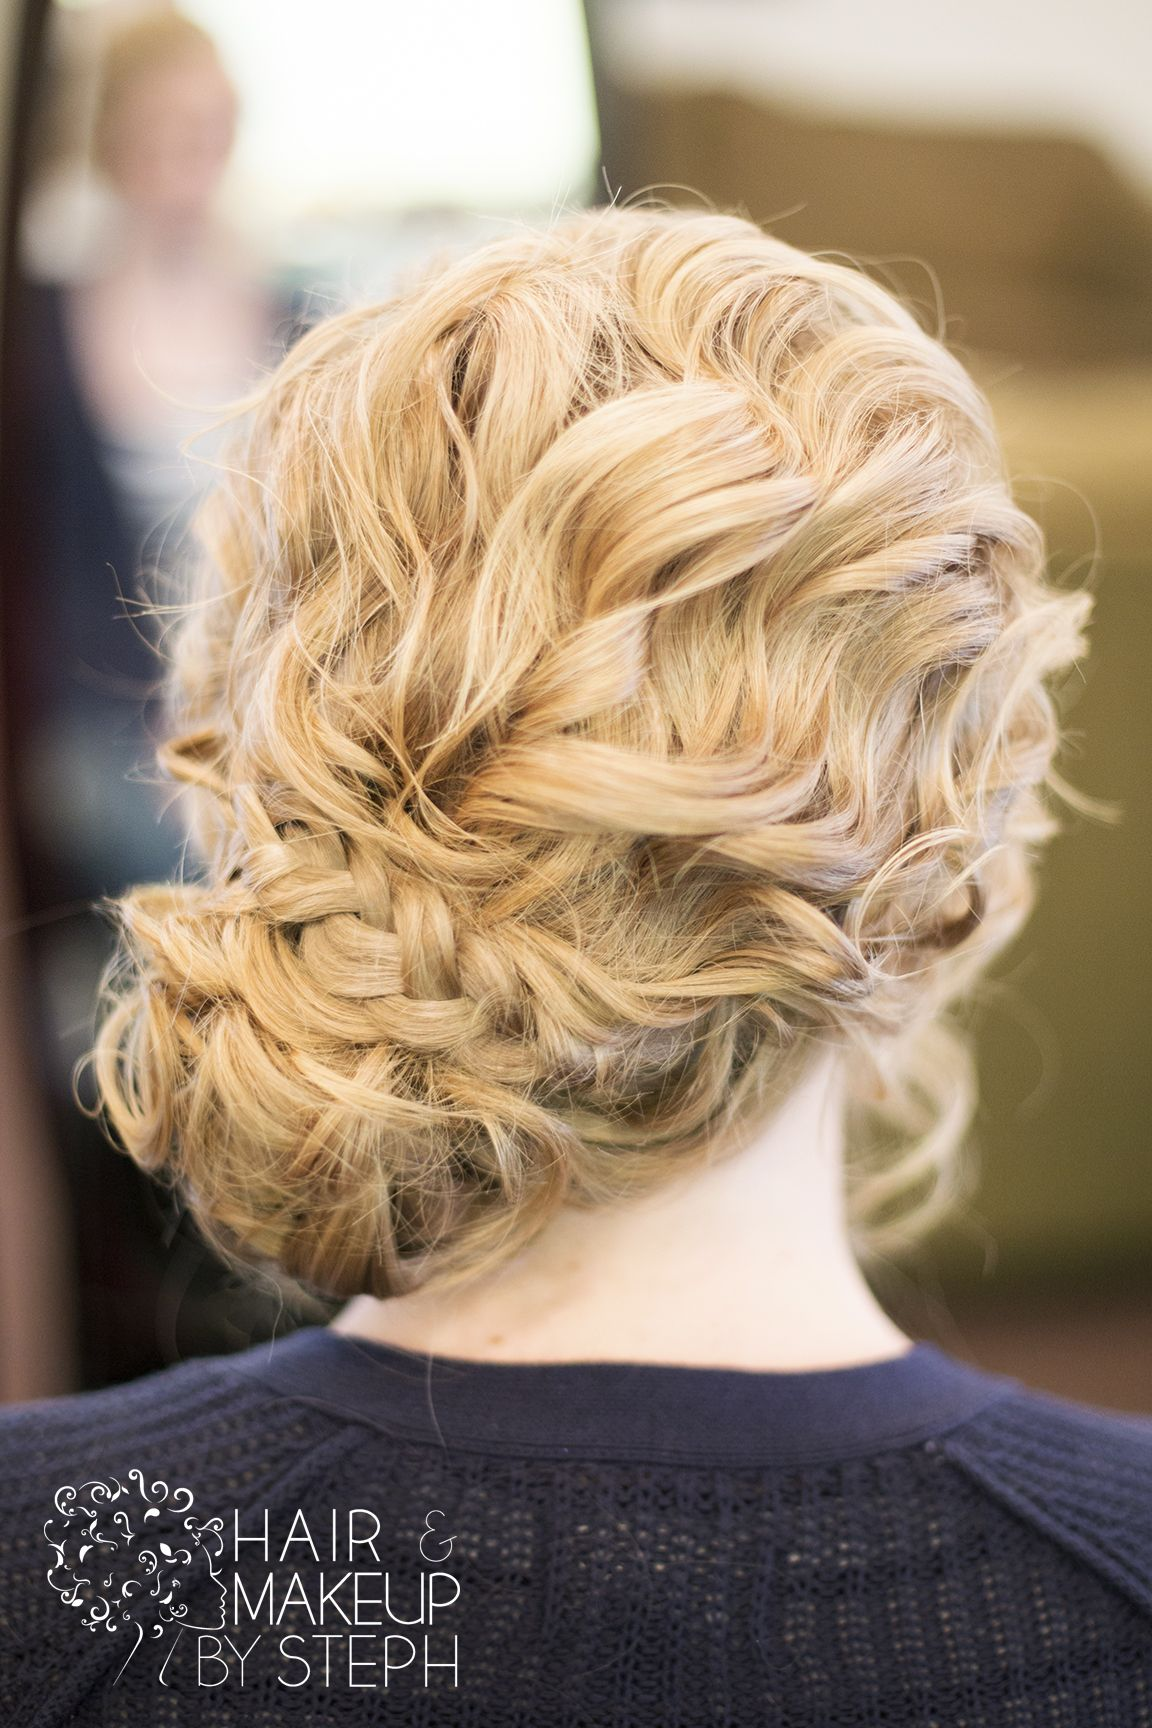 Hair and makeup by steph updo formal and spring